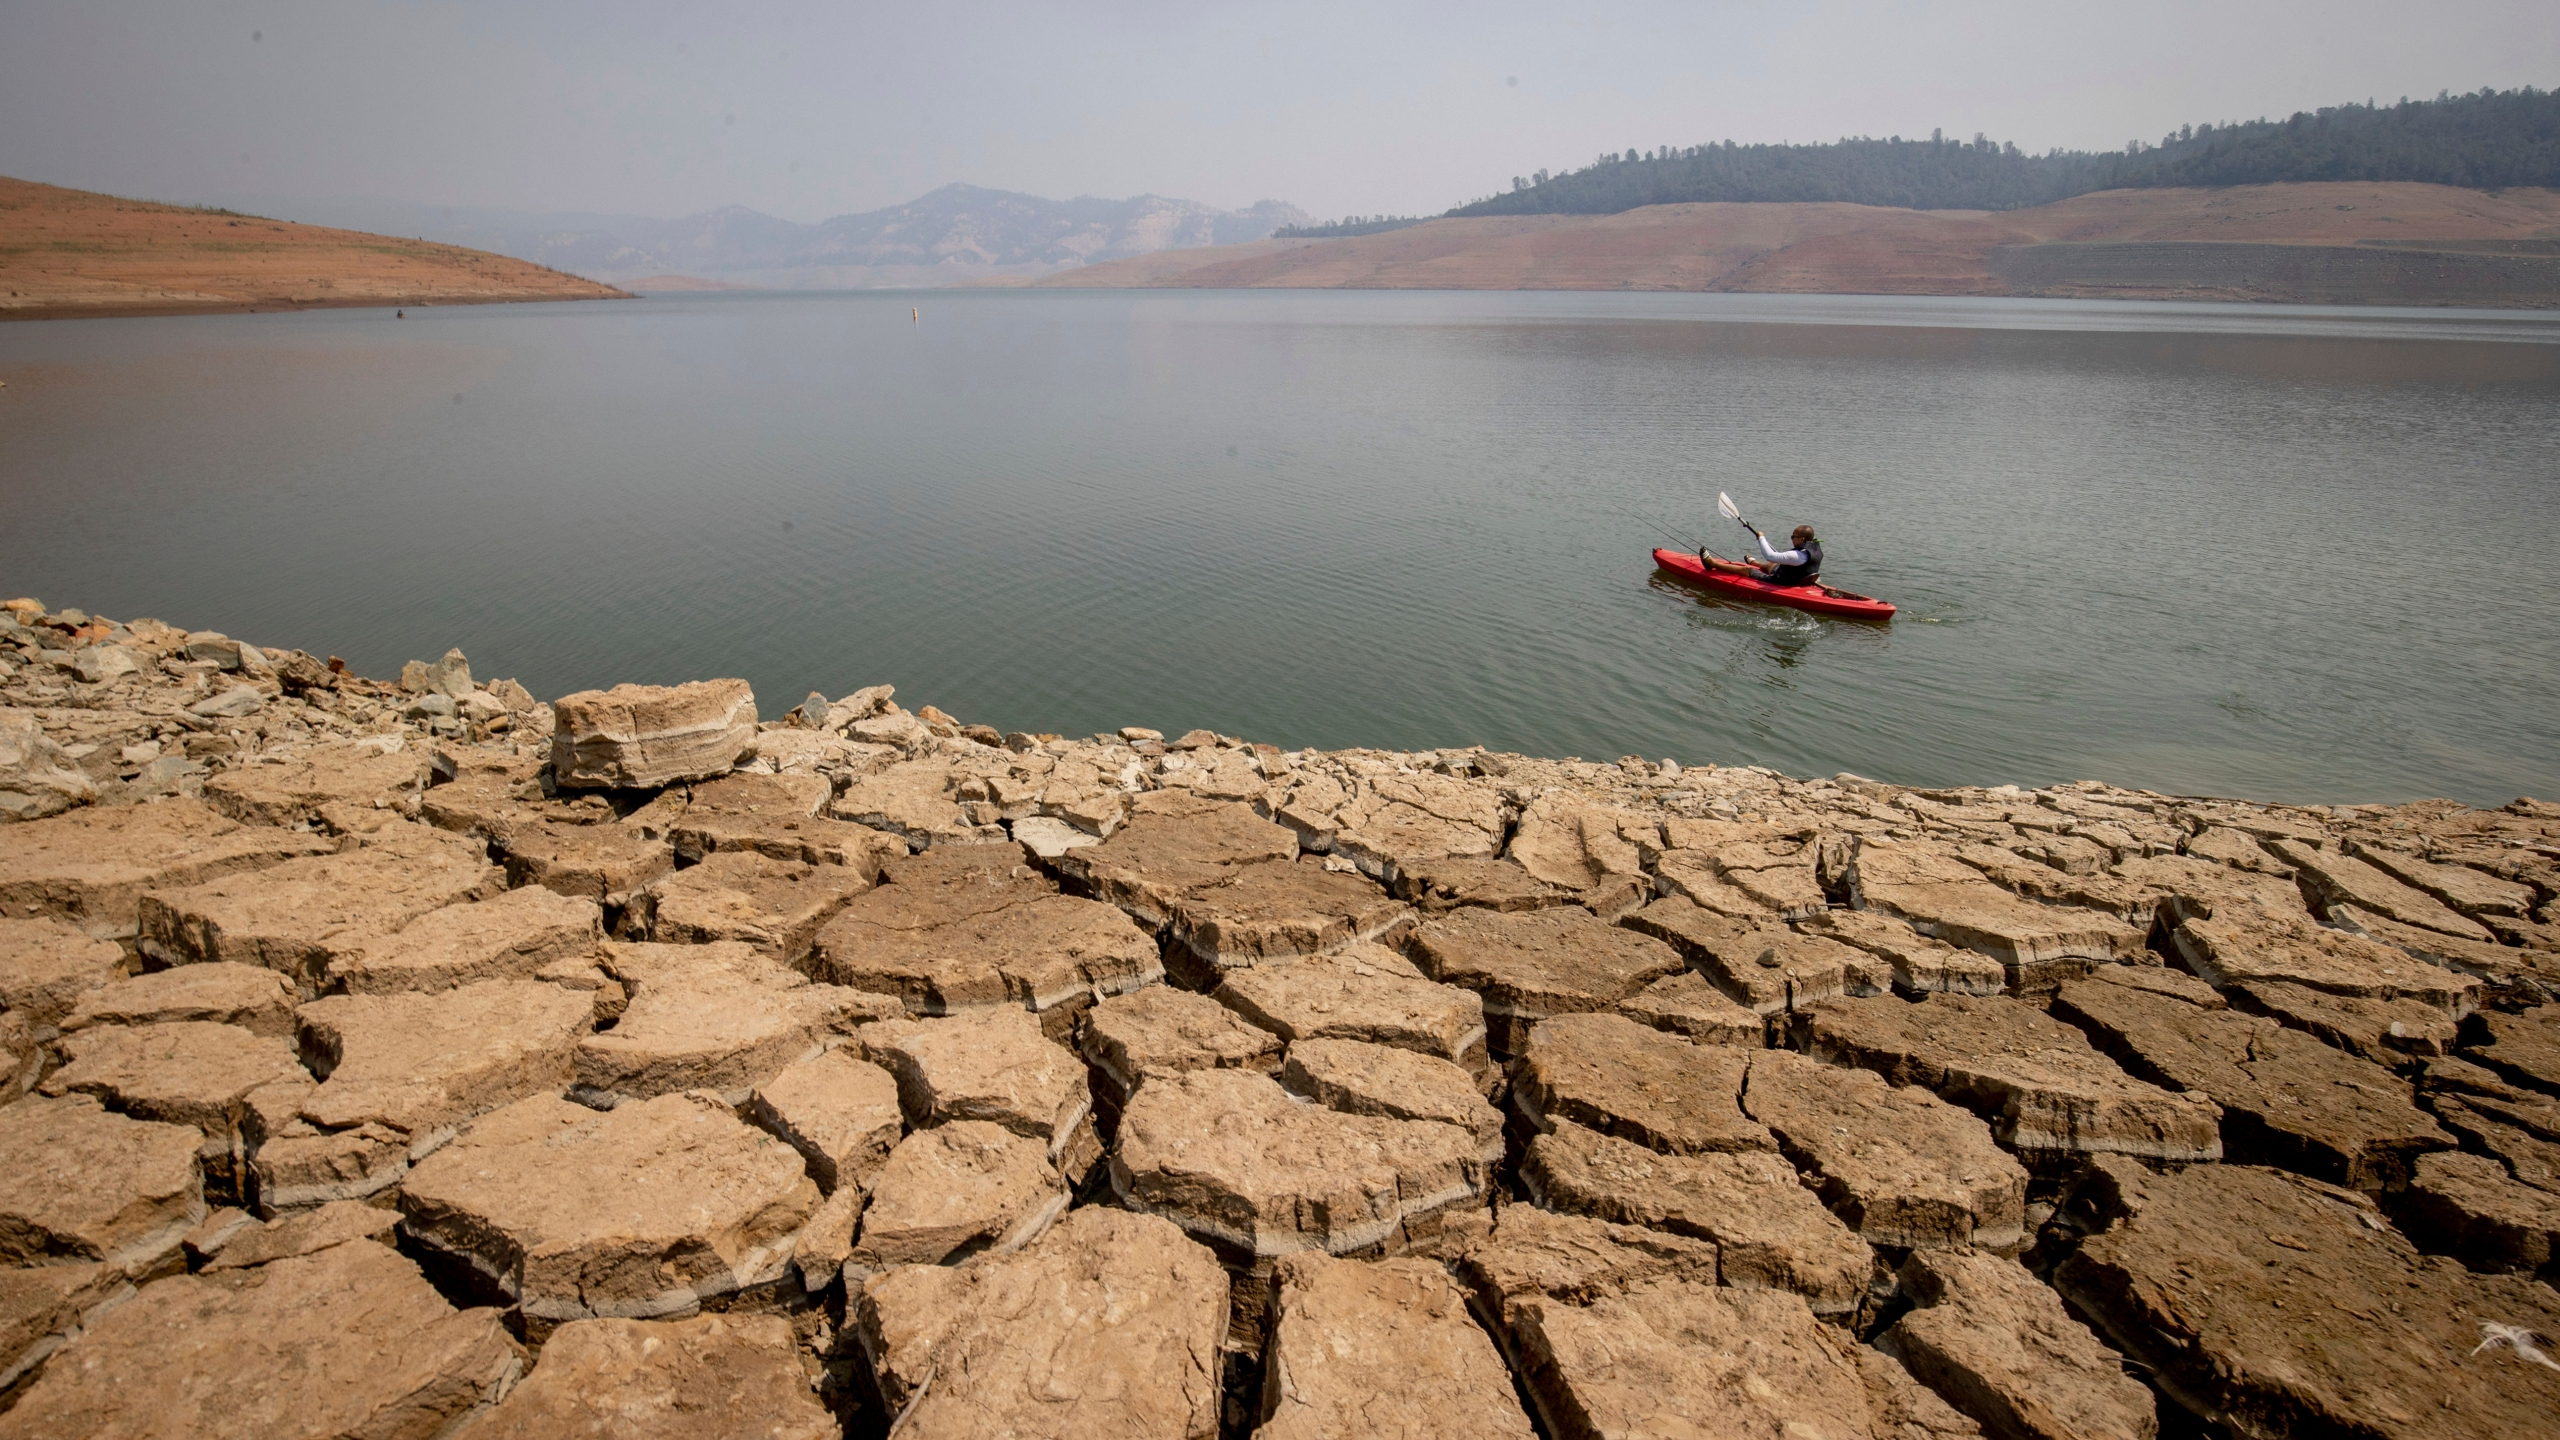 A kayaker fishes in Lake Oroville as water levels remain low due to continuing drought conditions on Aug. 22, 2021. (Ethan Swope / Associated Press)